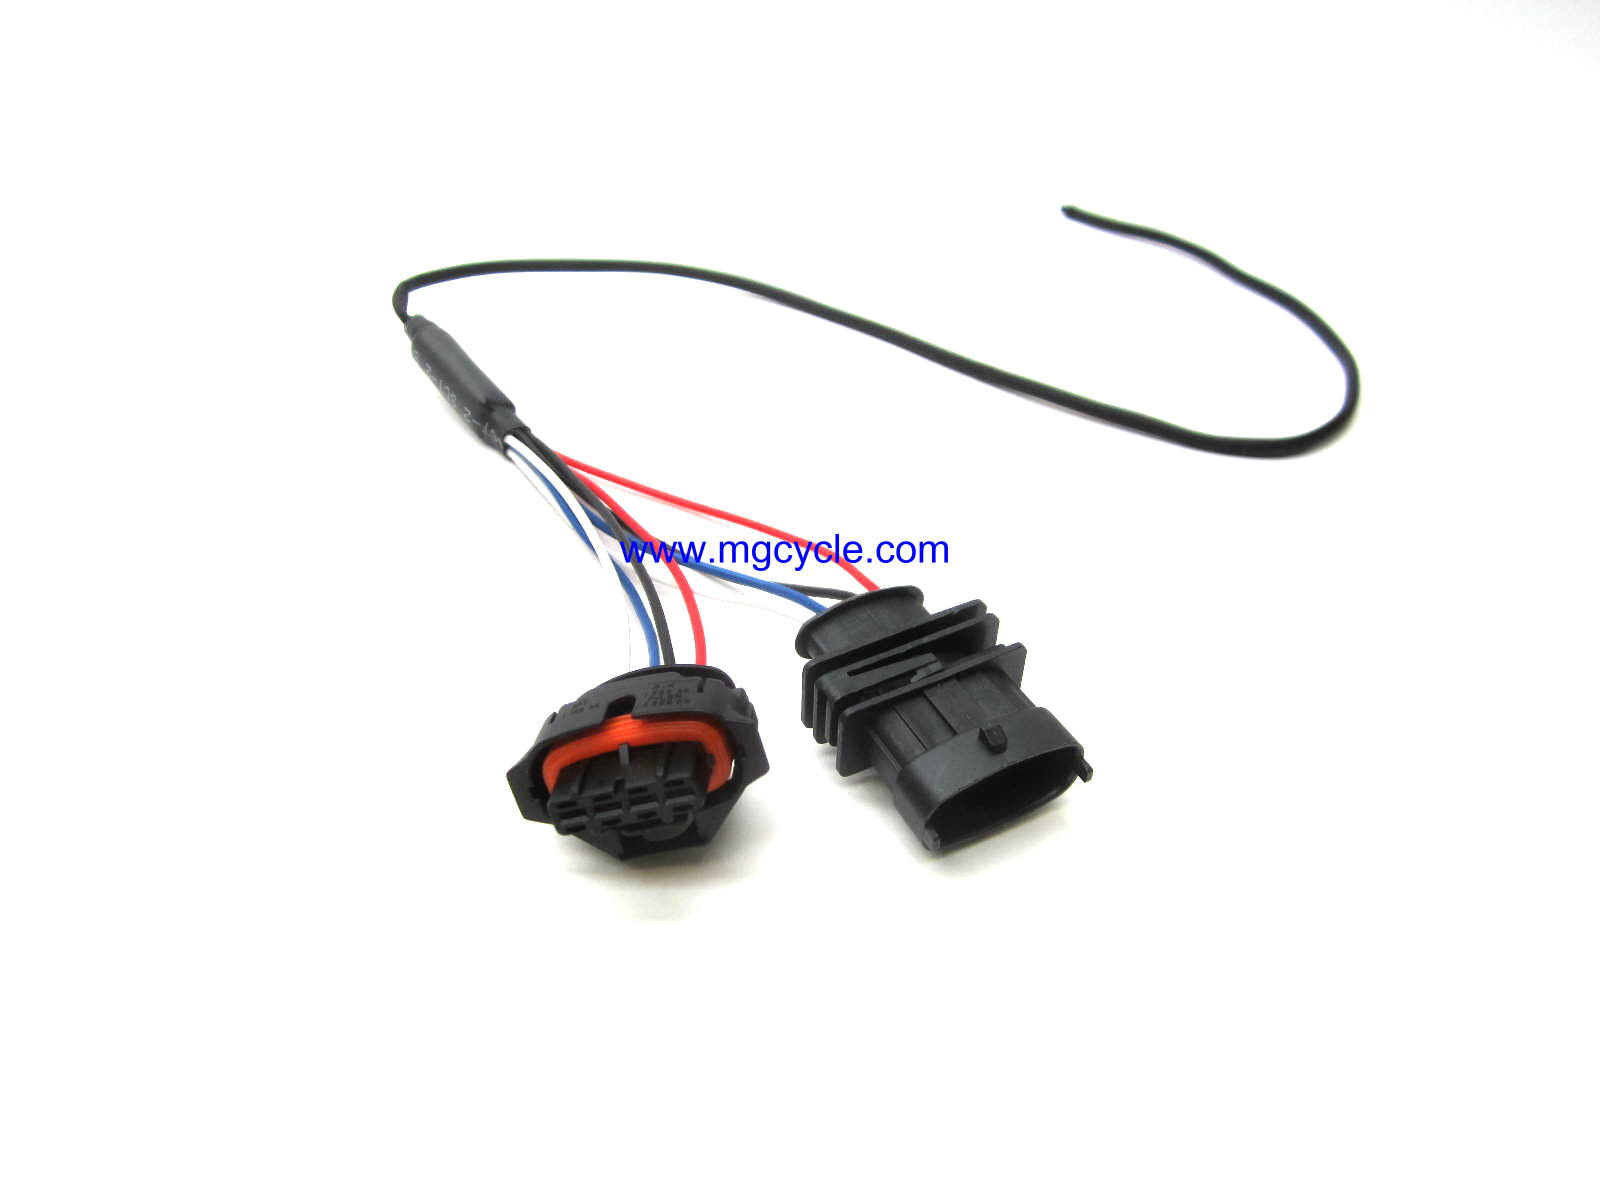 Mistral V-TWINBOOST14 fuel injection trim module